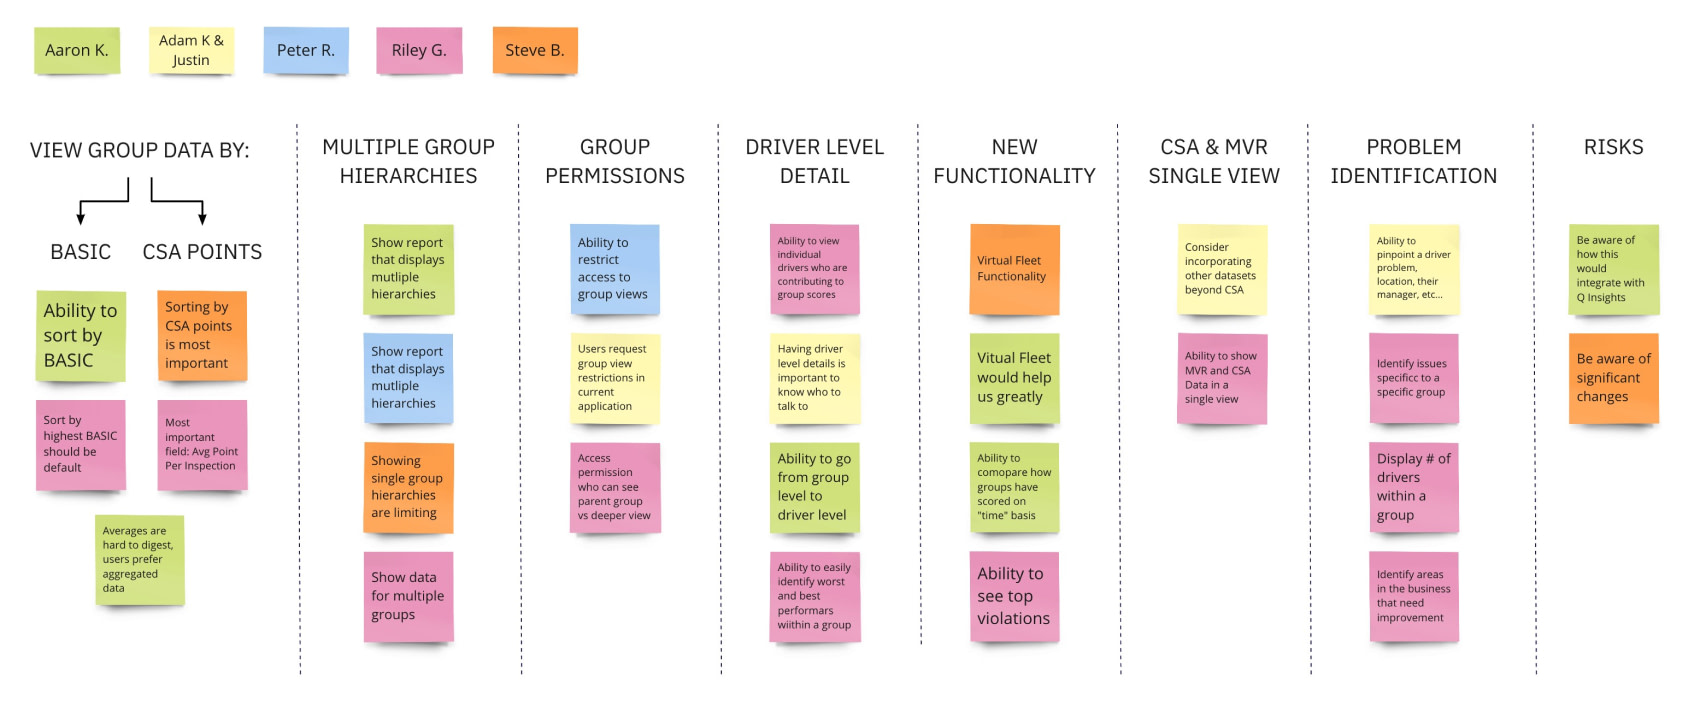 When building a good IA, researching what users need and want is one of the most important steps